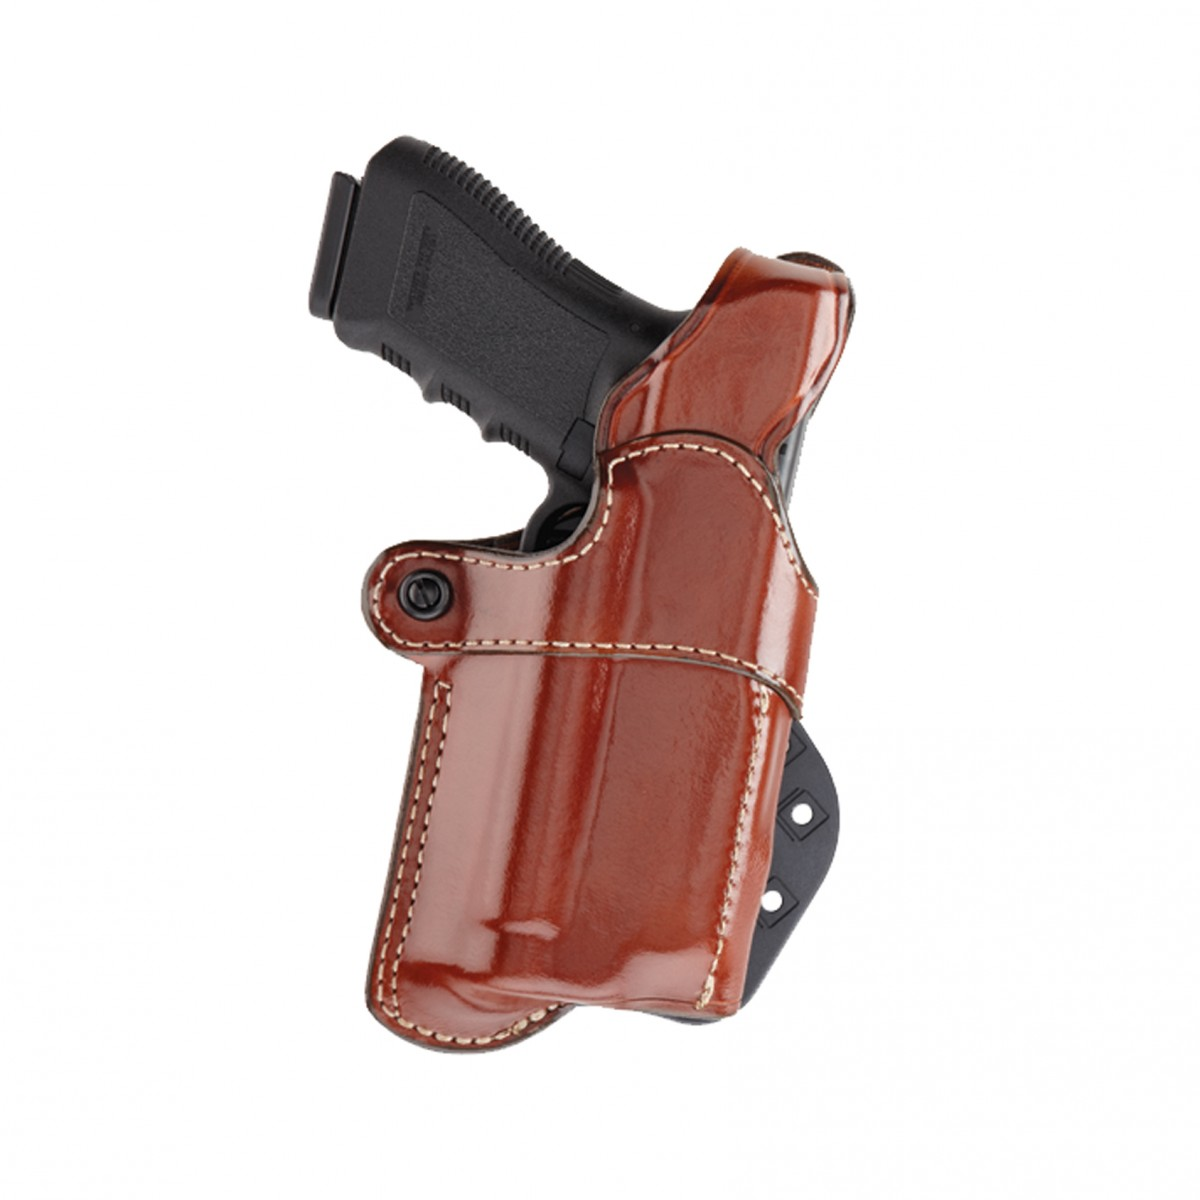 Nightguard™ Paddle Holster Model: 267